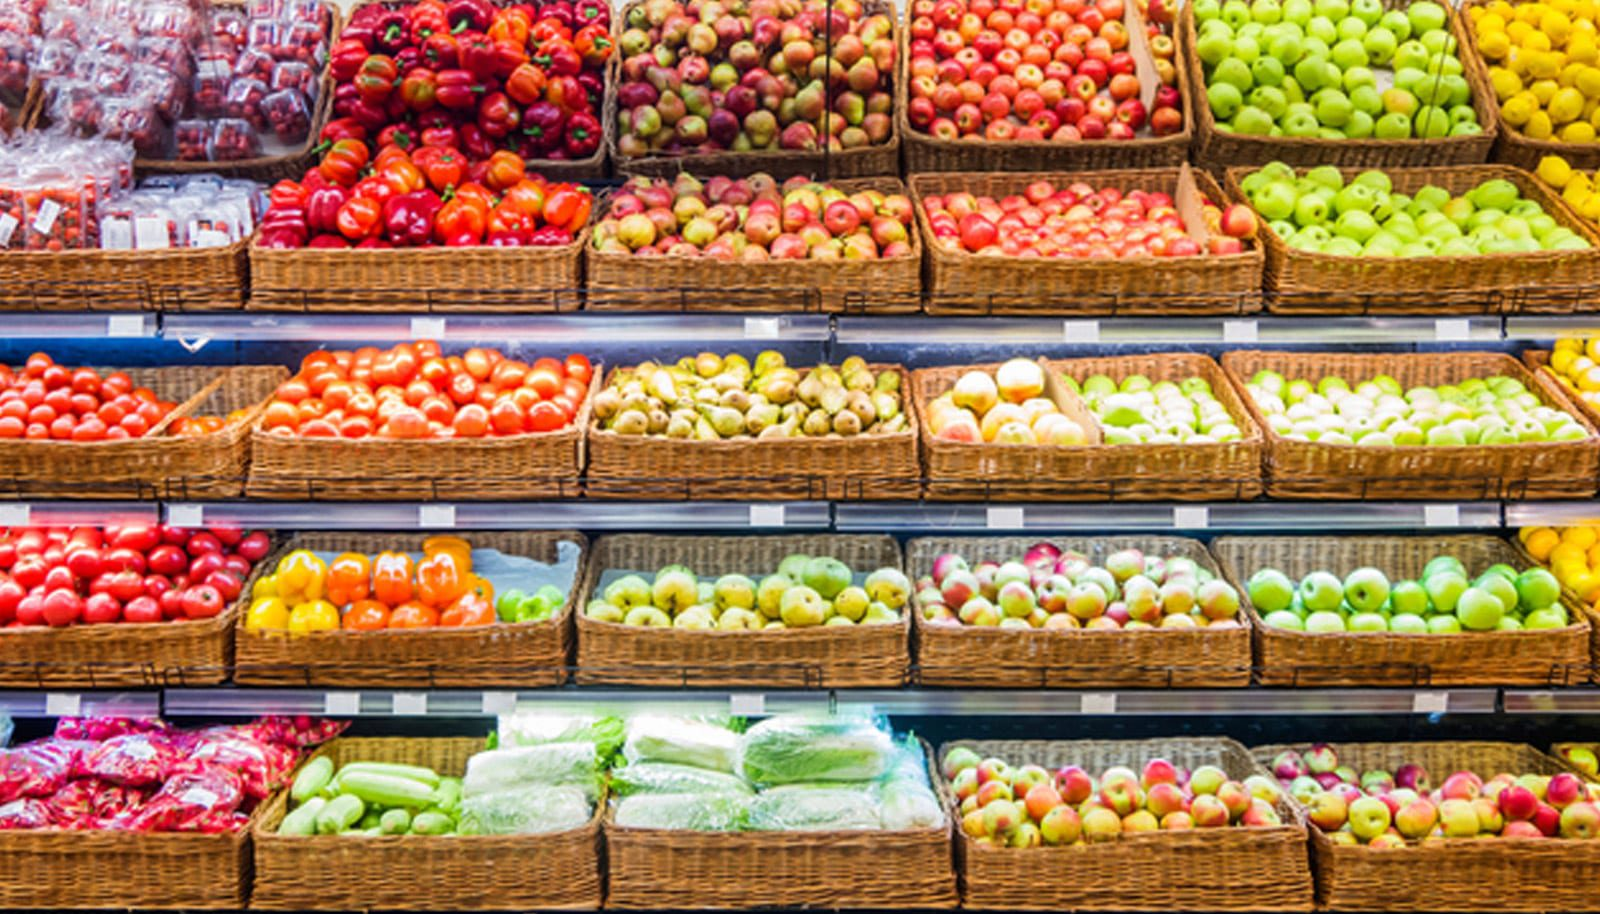 produce aisle at a grocery store